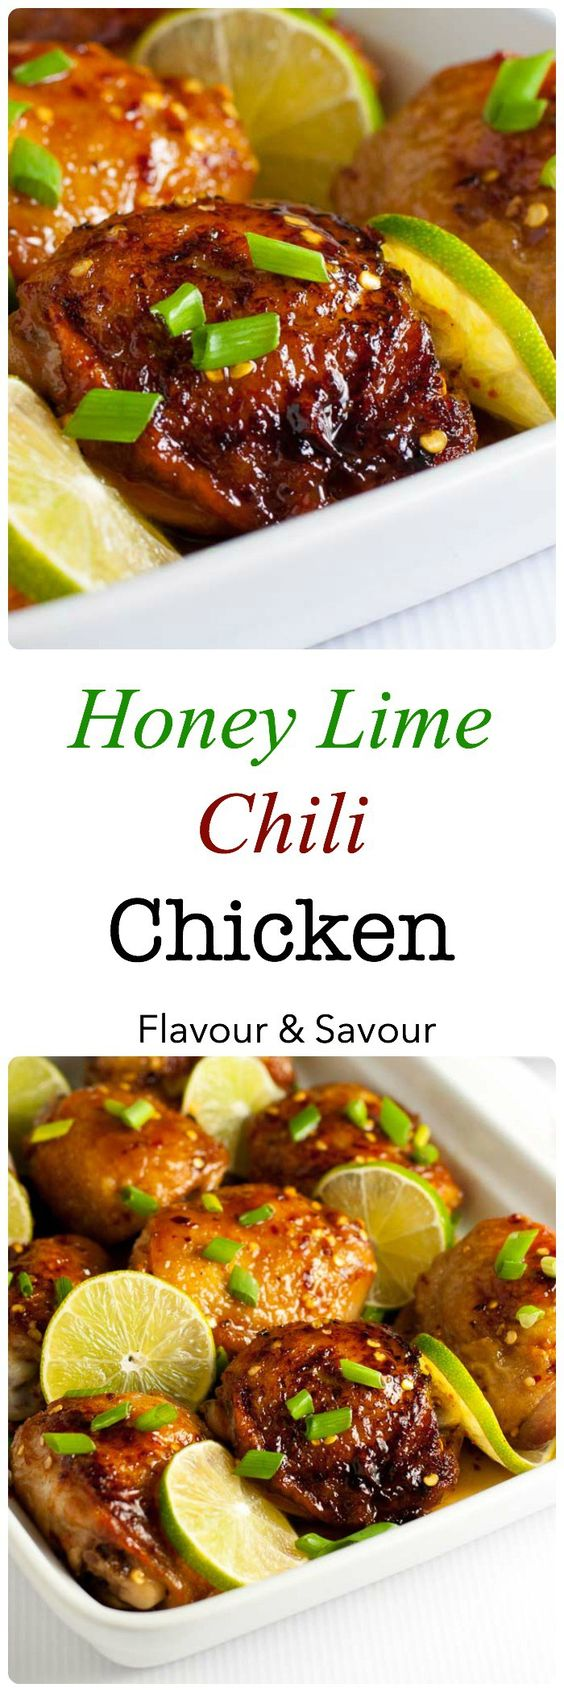 """This recipe for 4-Ingredient Honey Lime Chili Chicken Thighs makes an easy weeknight meal. It's sweet, spicy and succulent!"" 4 Ingredient Honey Lime Chili Chicken Thighs 